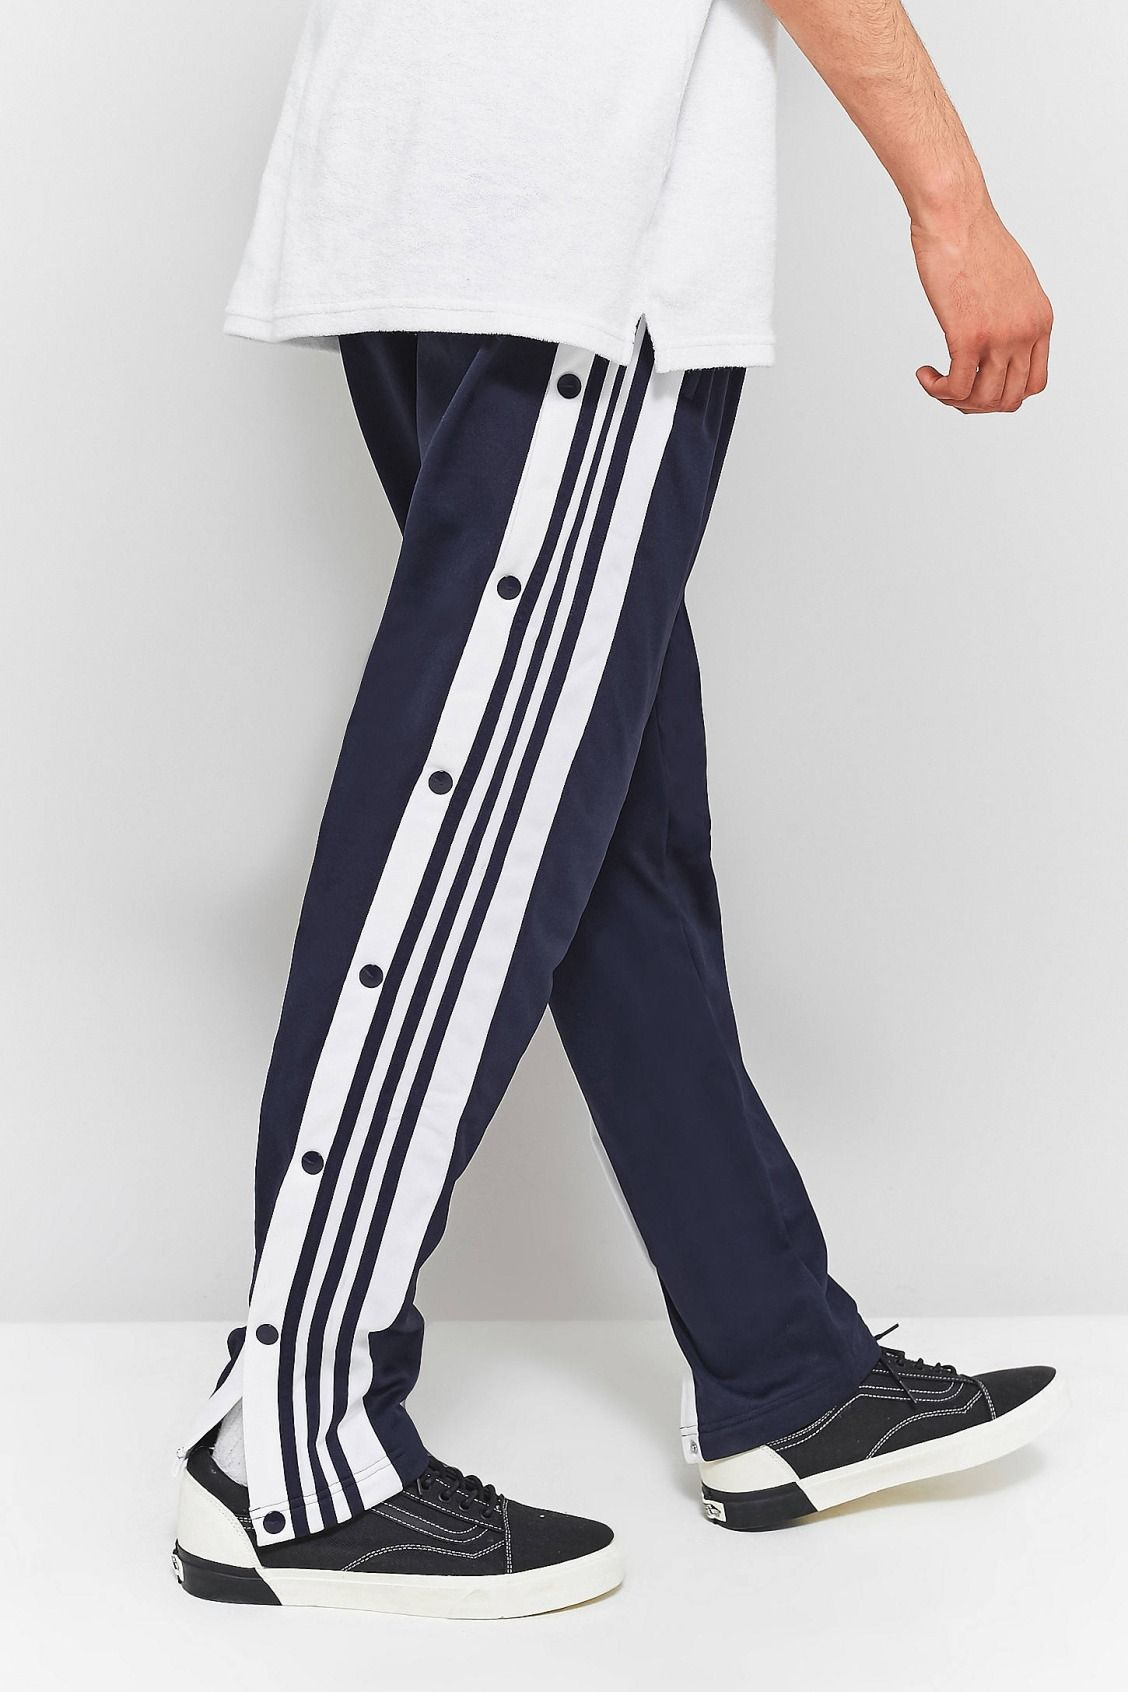 c405061f68f3 adidas Legend Ink Adibreak Popper Track Pants